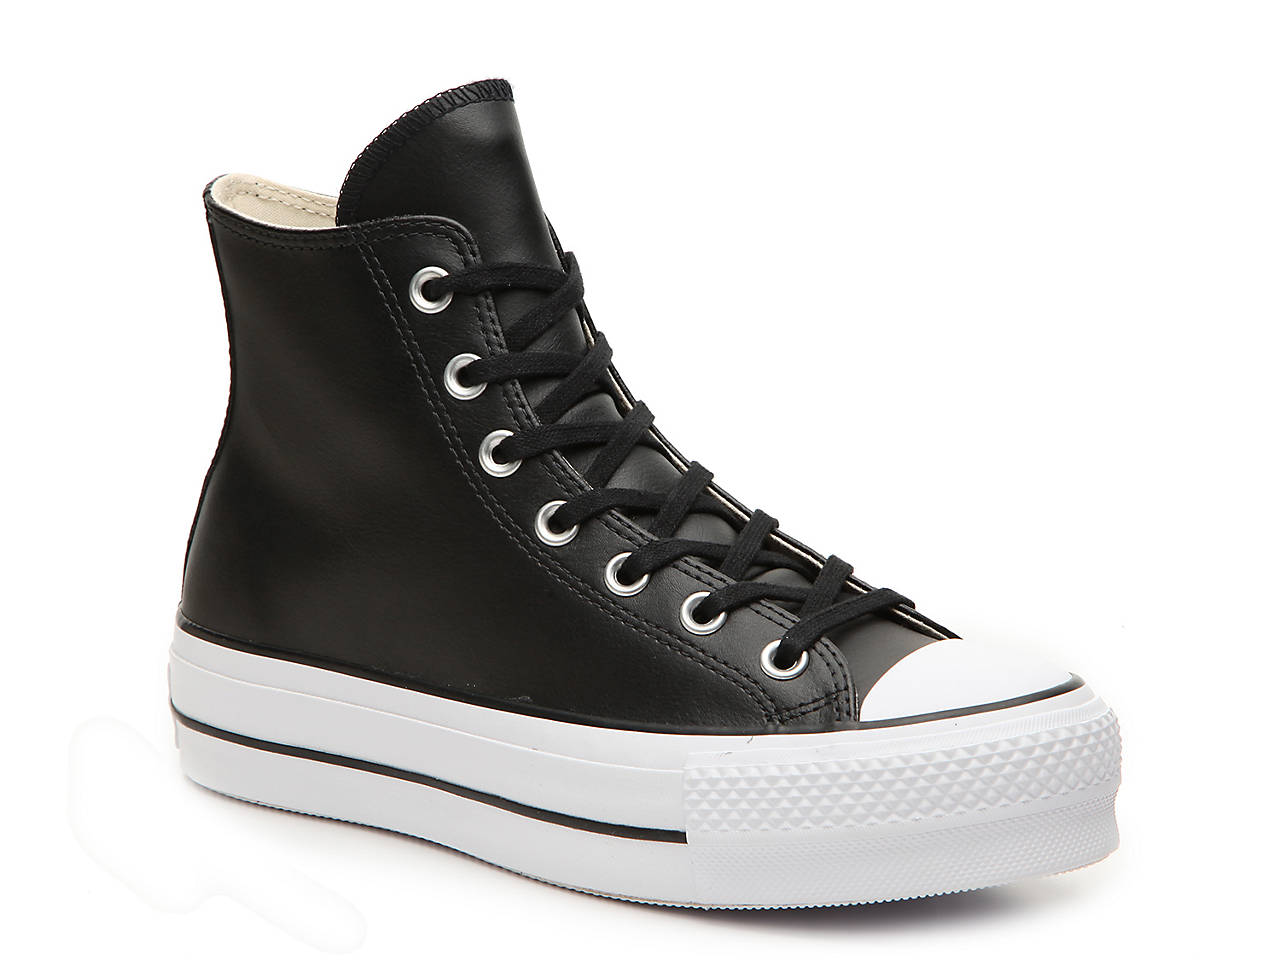 393d839587a Converse Chuck Taylor All Star High-Top Platform Sneaker - Women s ...